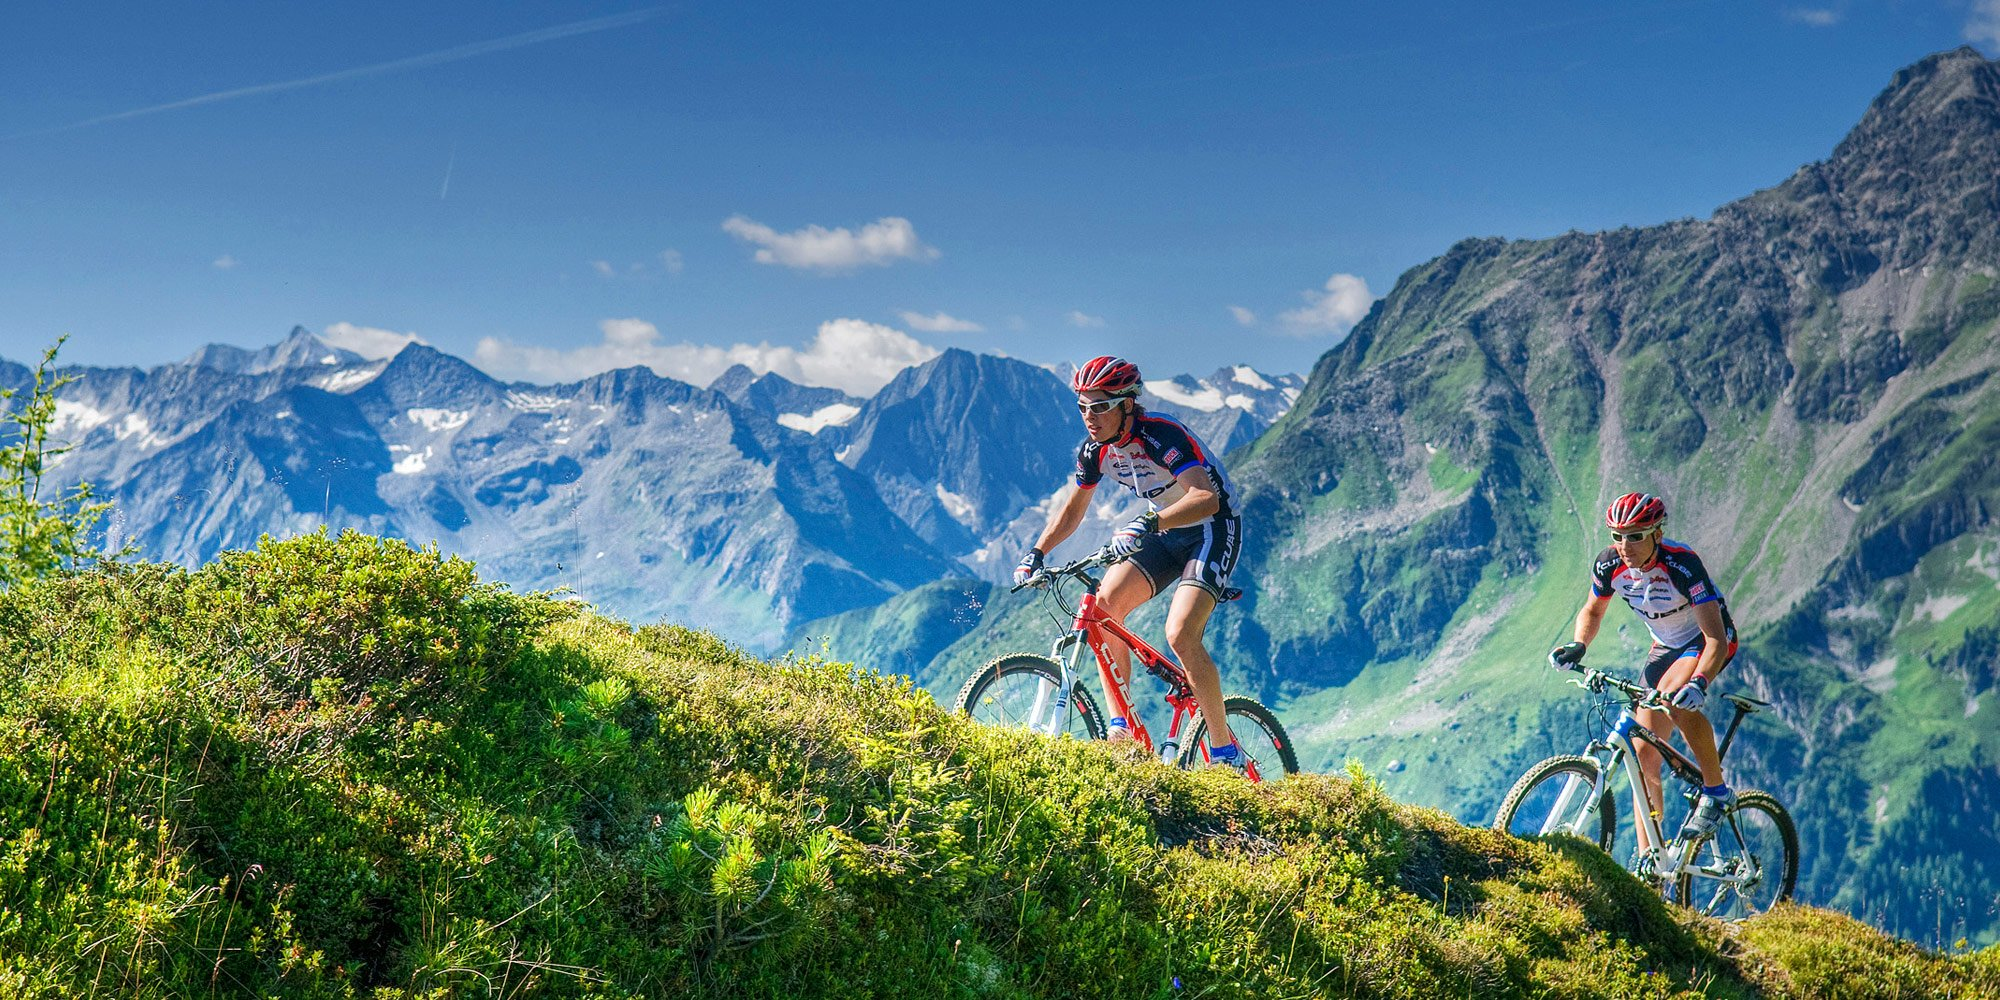 Here S Why You Should Give Mountain Biking A Try